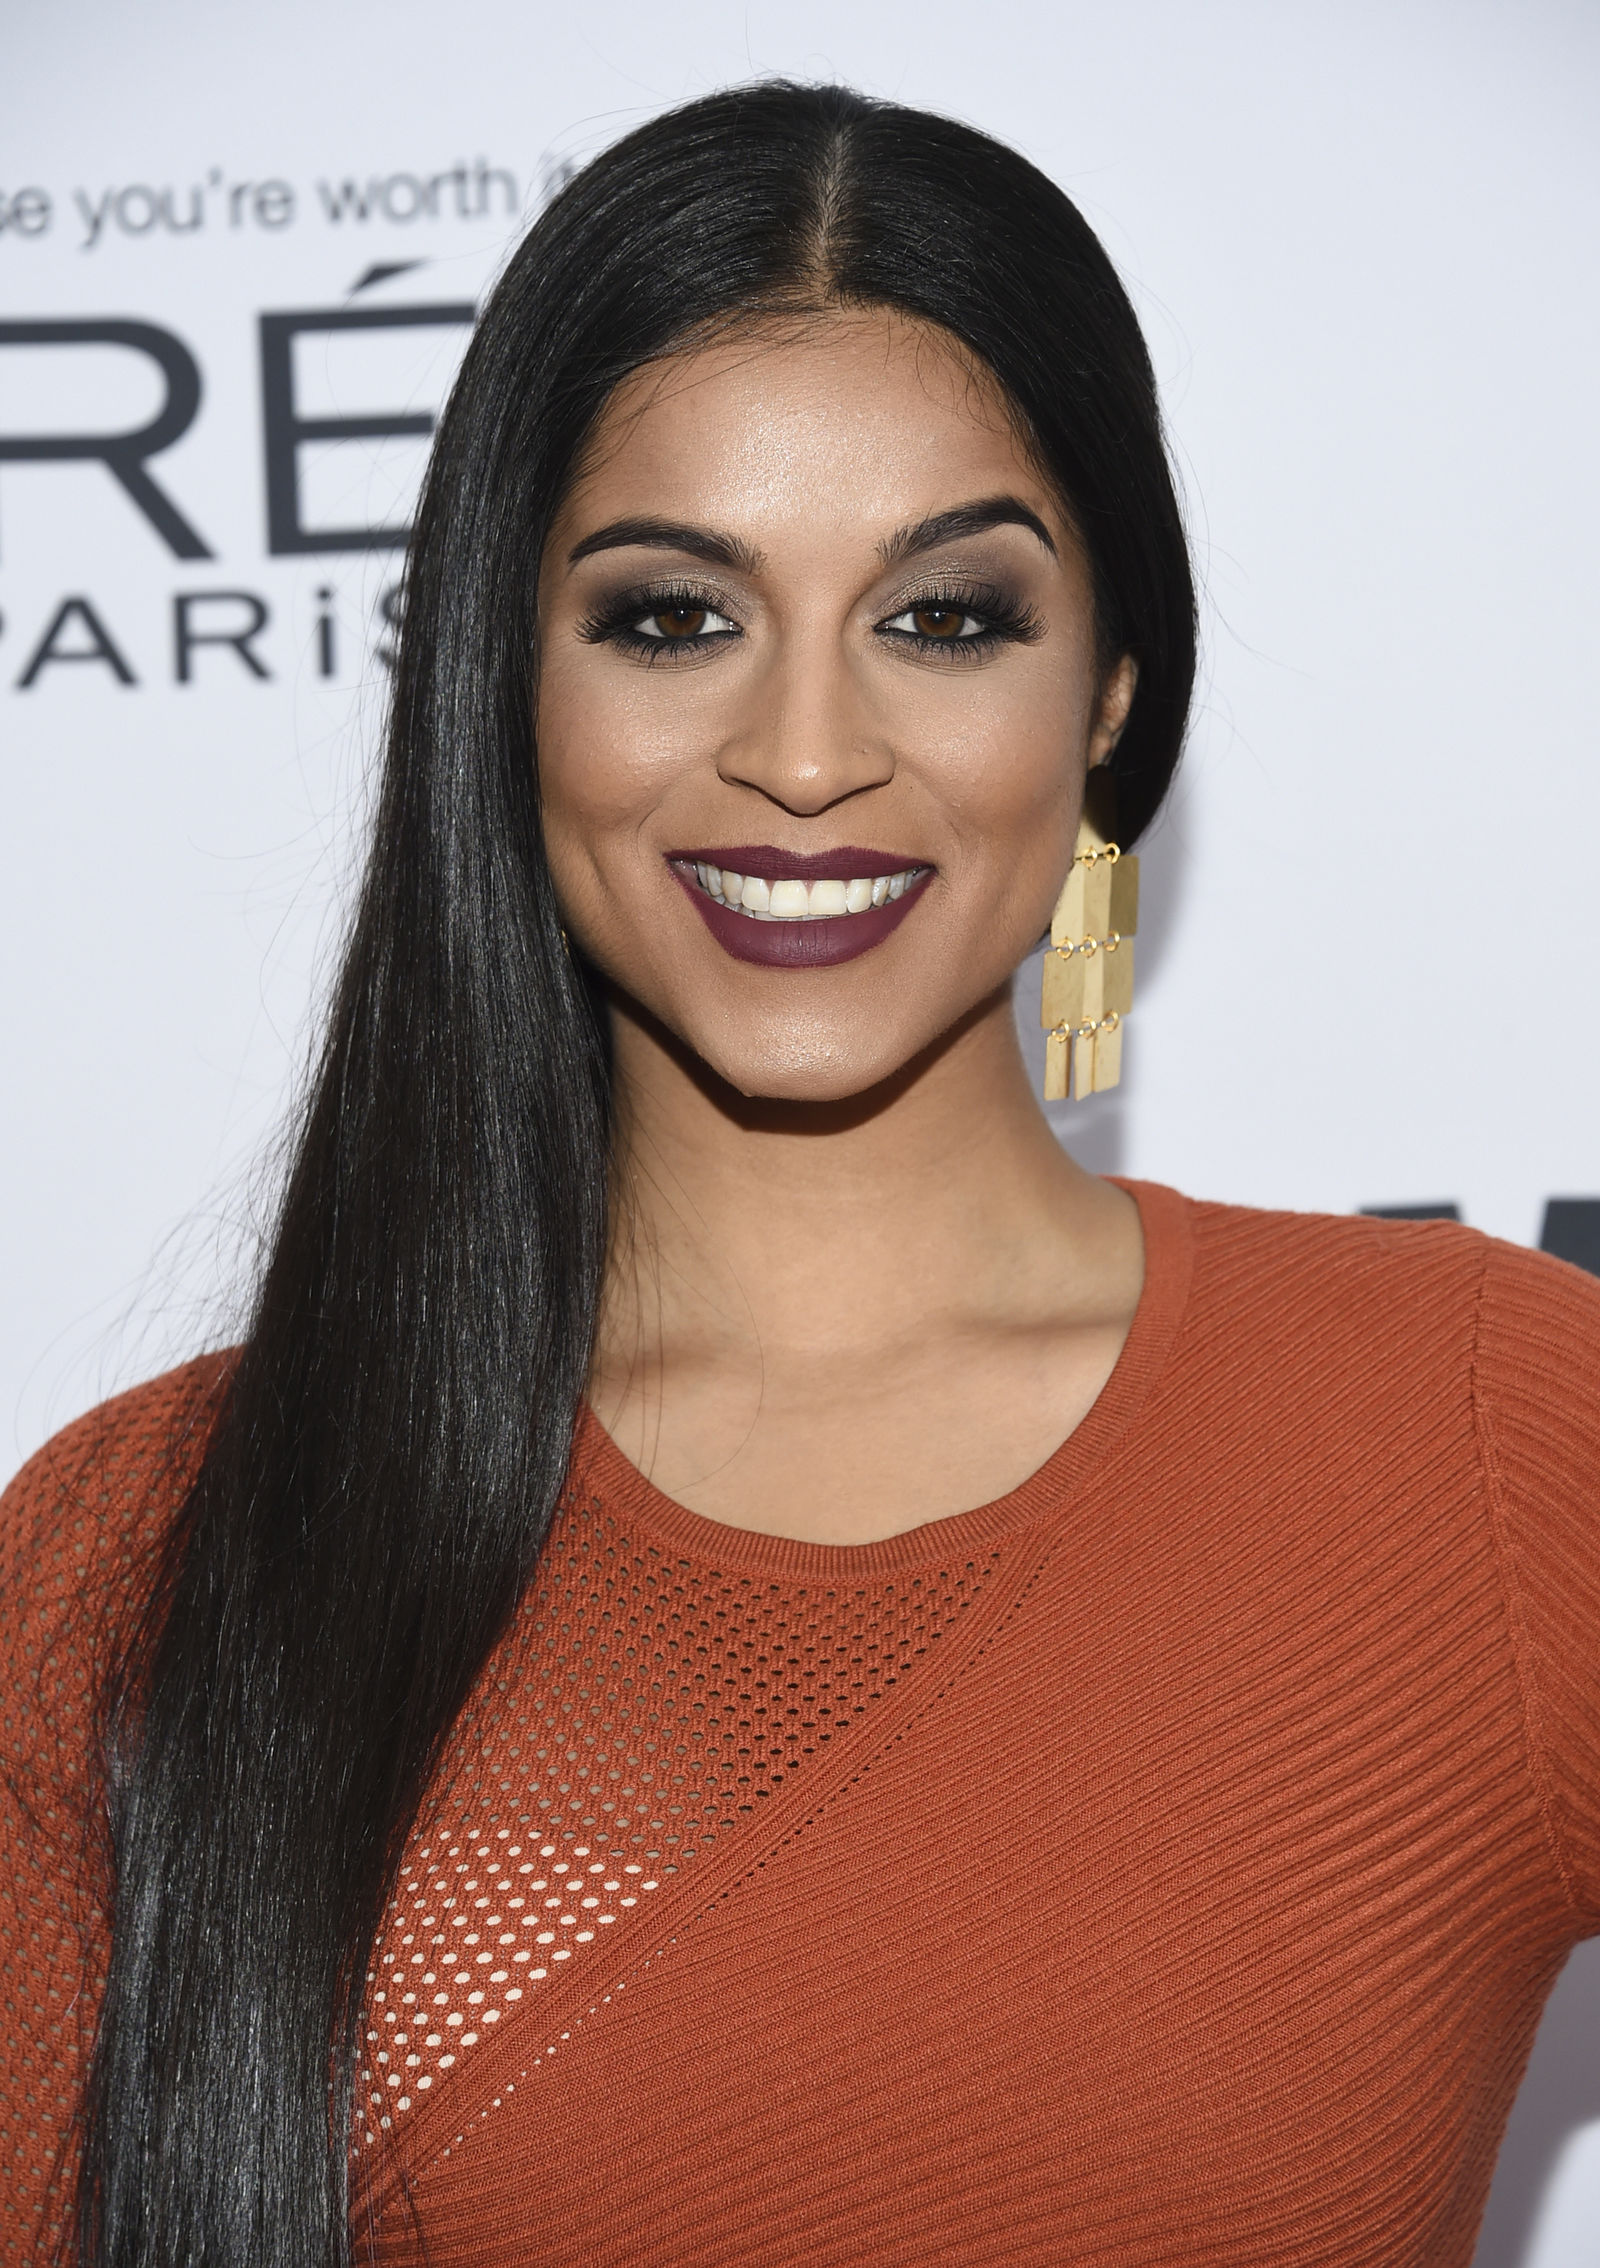 FILE - In this Monday, Nov. 13, 2017 file photo, Lilly Singh attends the 2017 Glamour Women of the Year Awards at Kings Theatre in New York.{ } (Photo by Evan Agostini/Invision/AP, File)